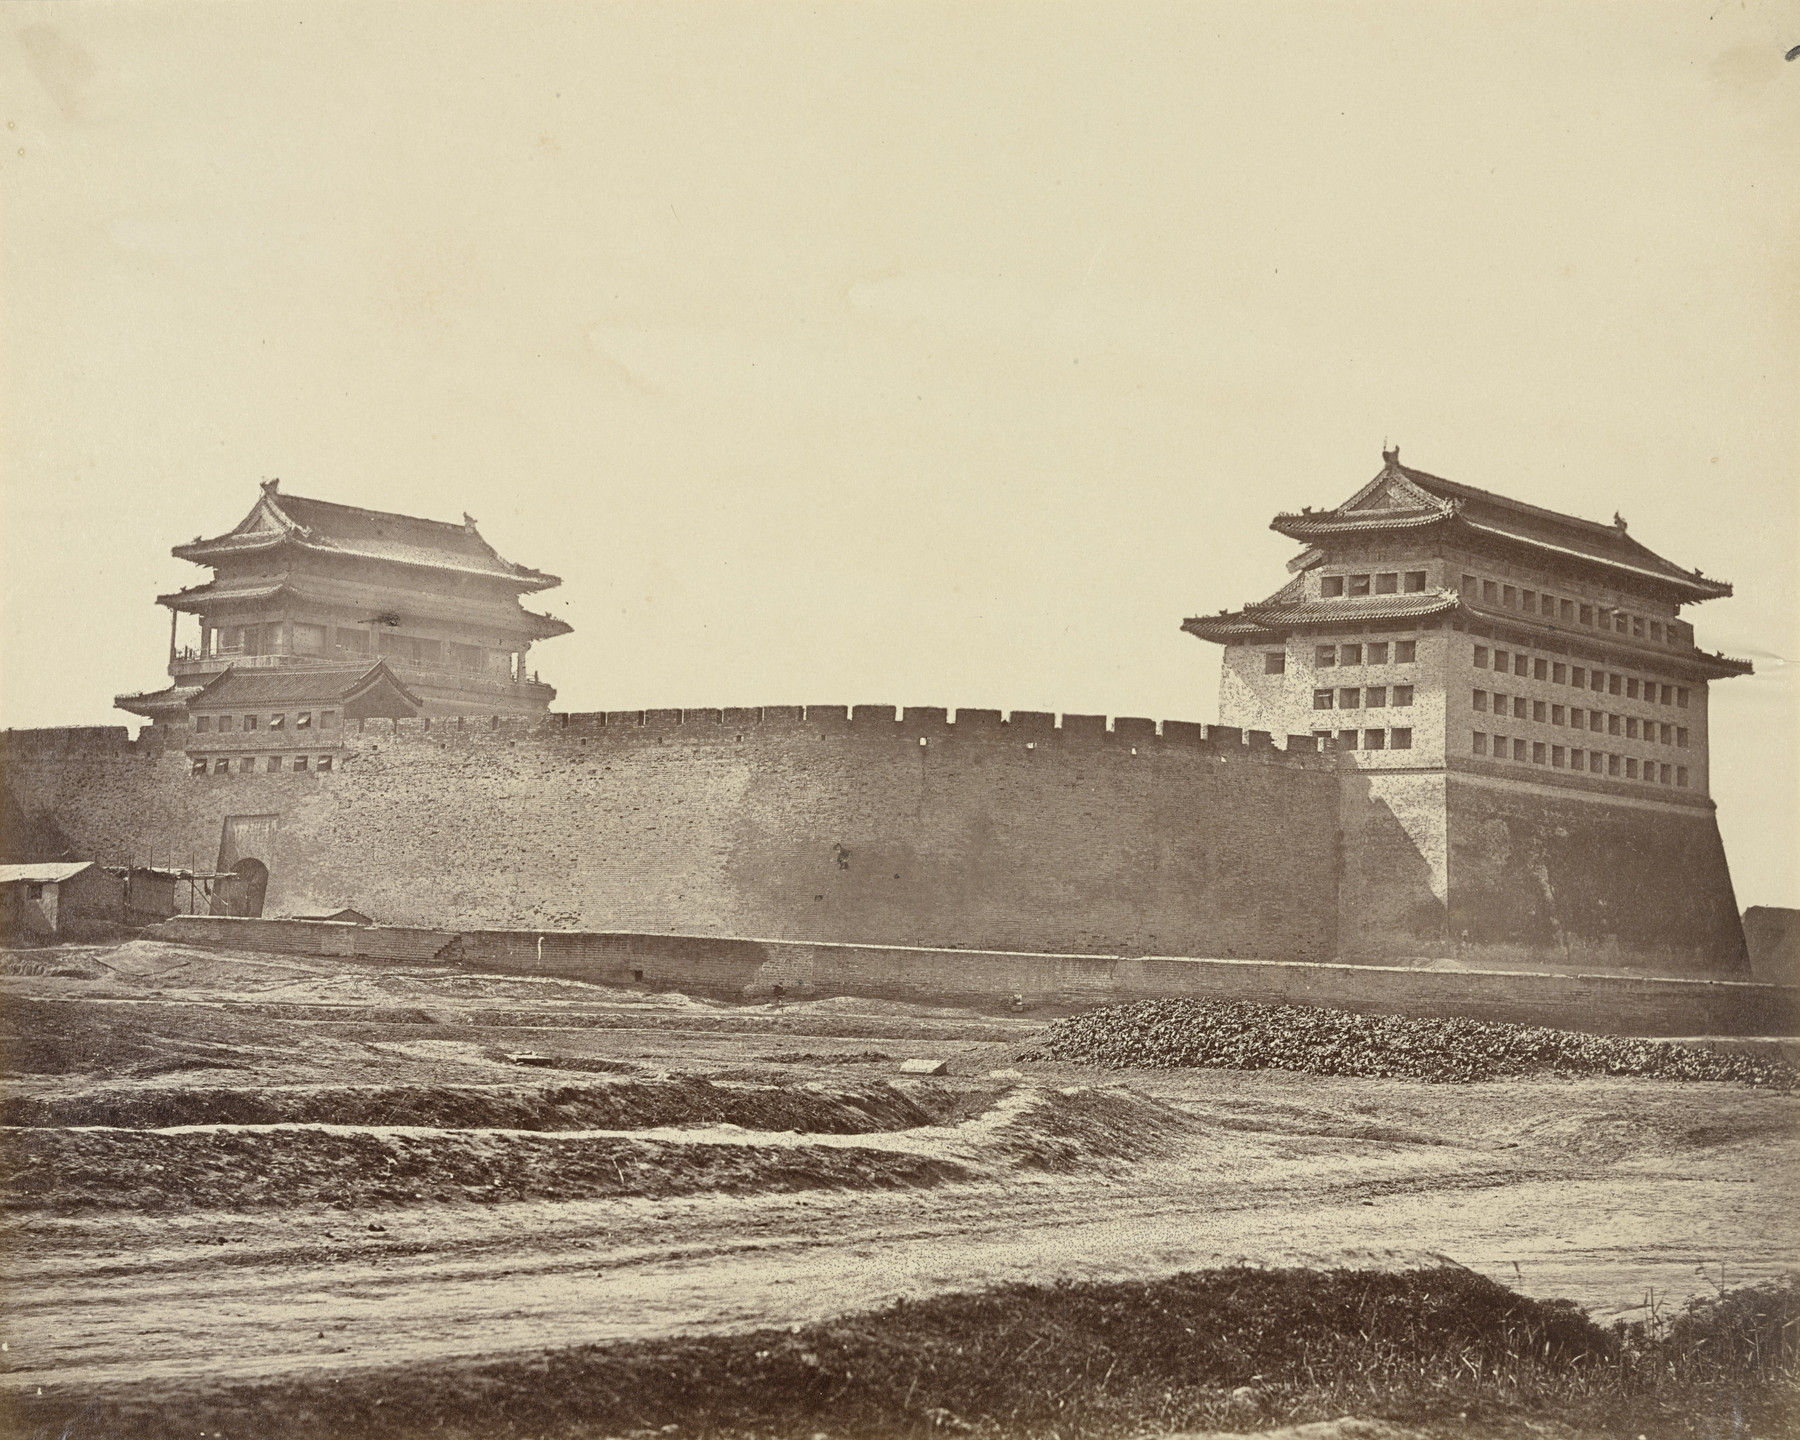 Felice Beato. Anting Gate of Peking After the Surrender, English and French Troops Take Possession. October 21, 1860